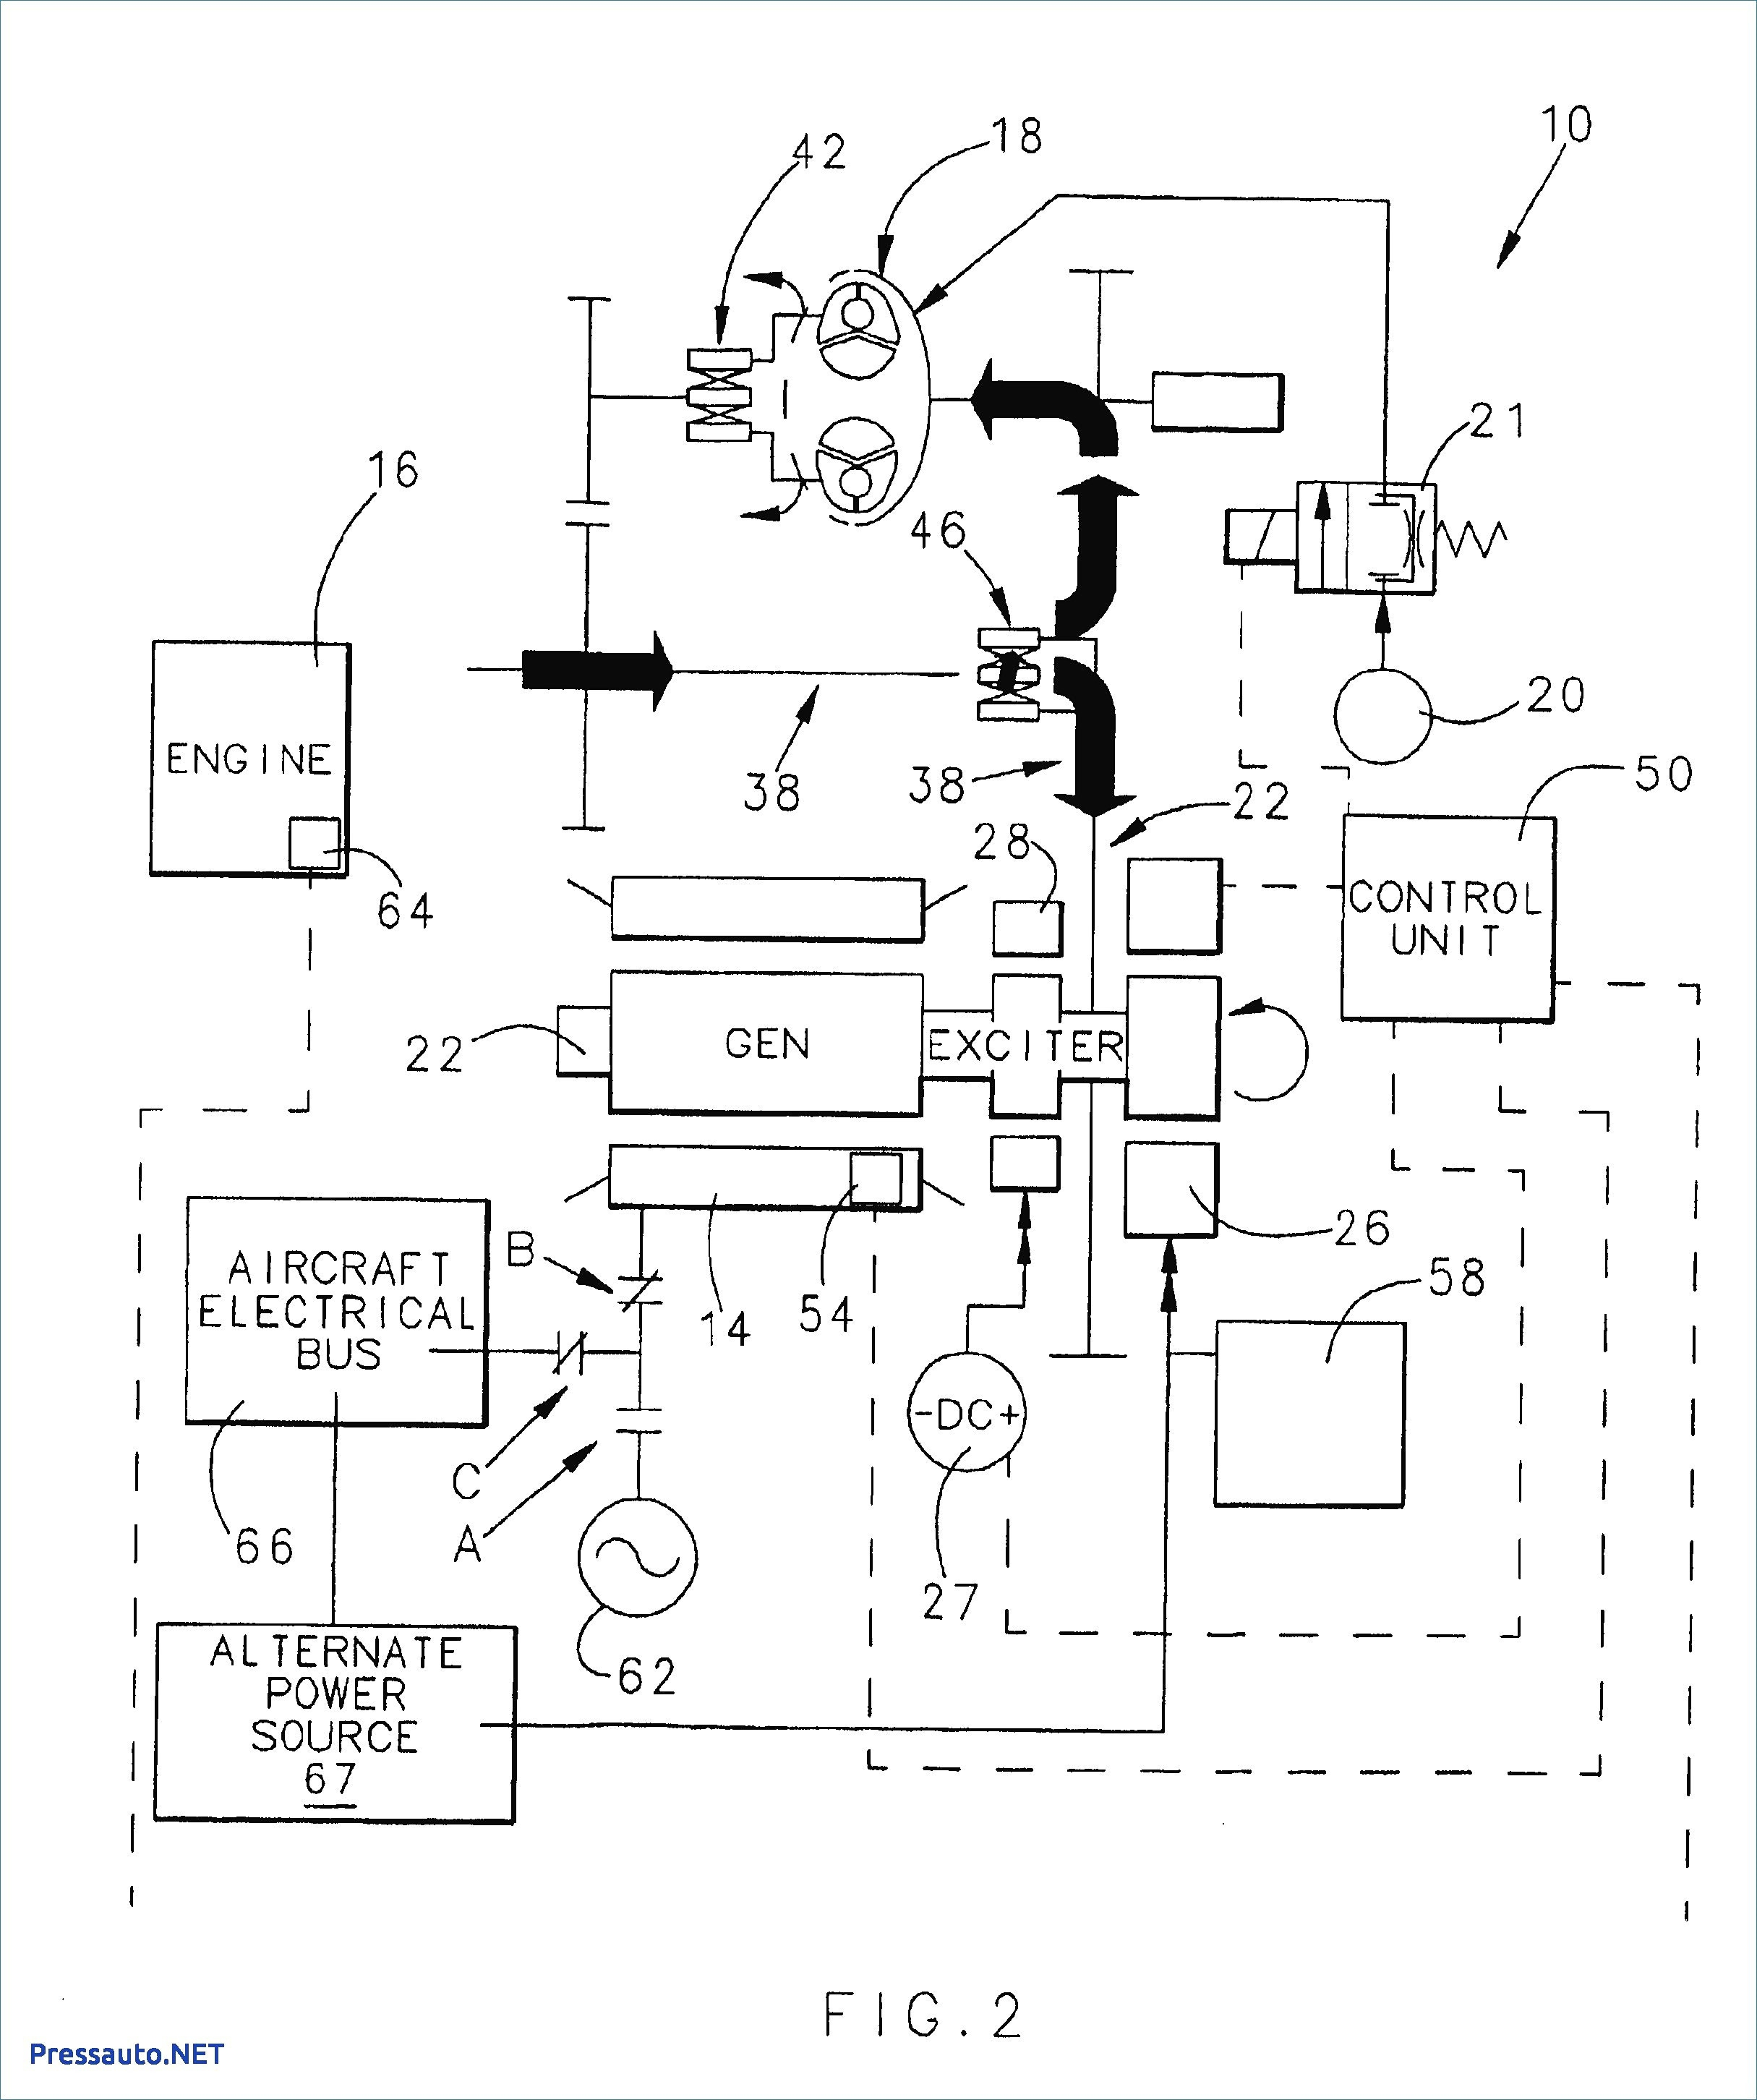 Ac Delco 4 Wire Alternator Wiring Diagram Free Wiring